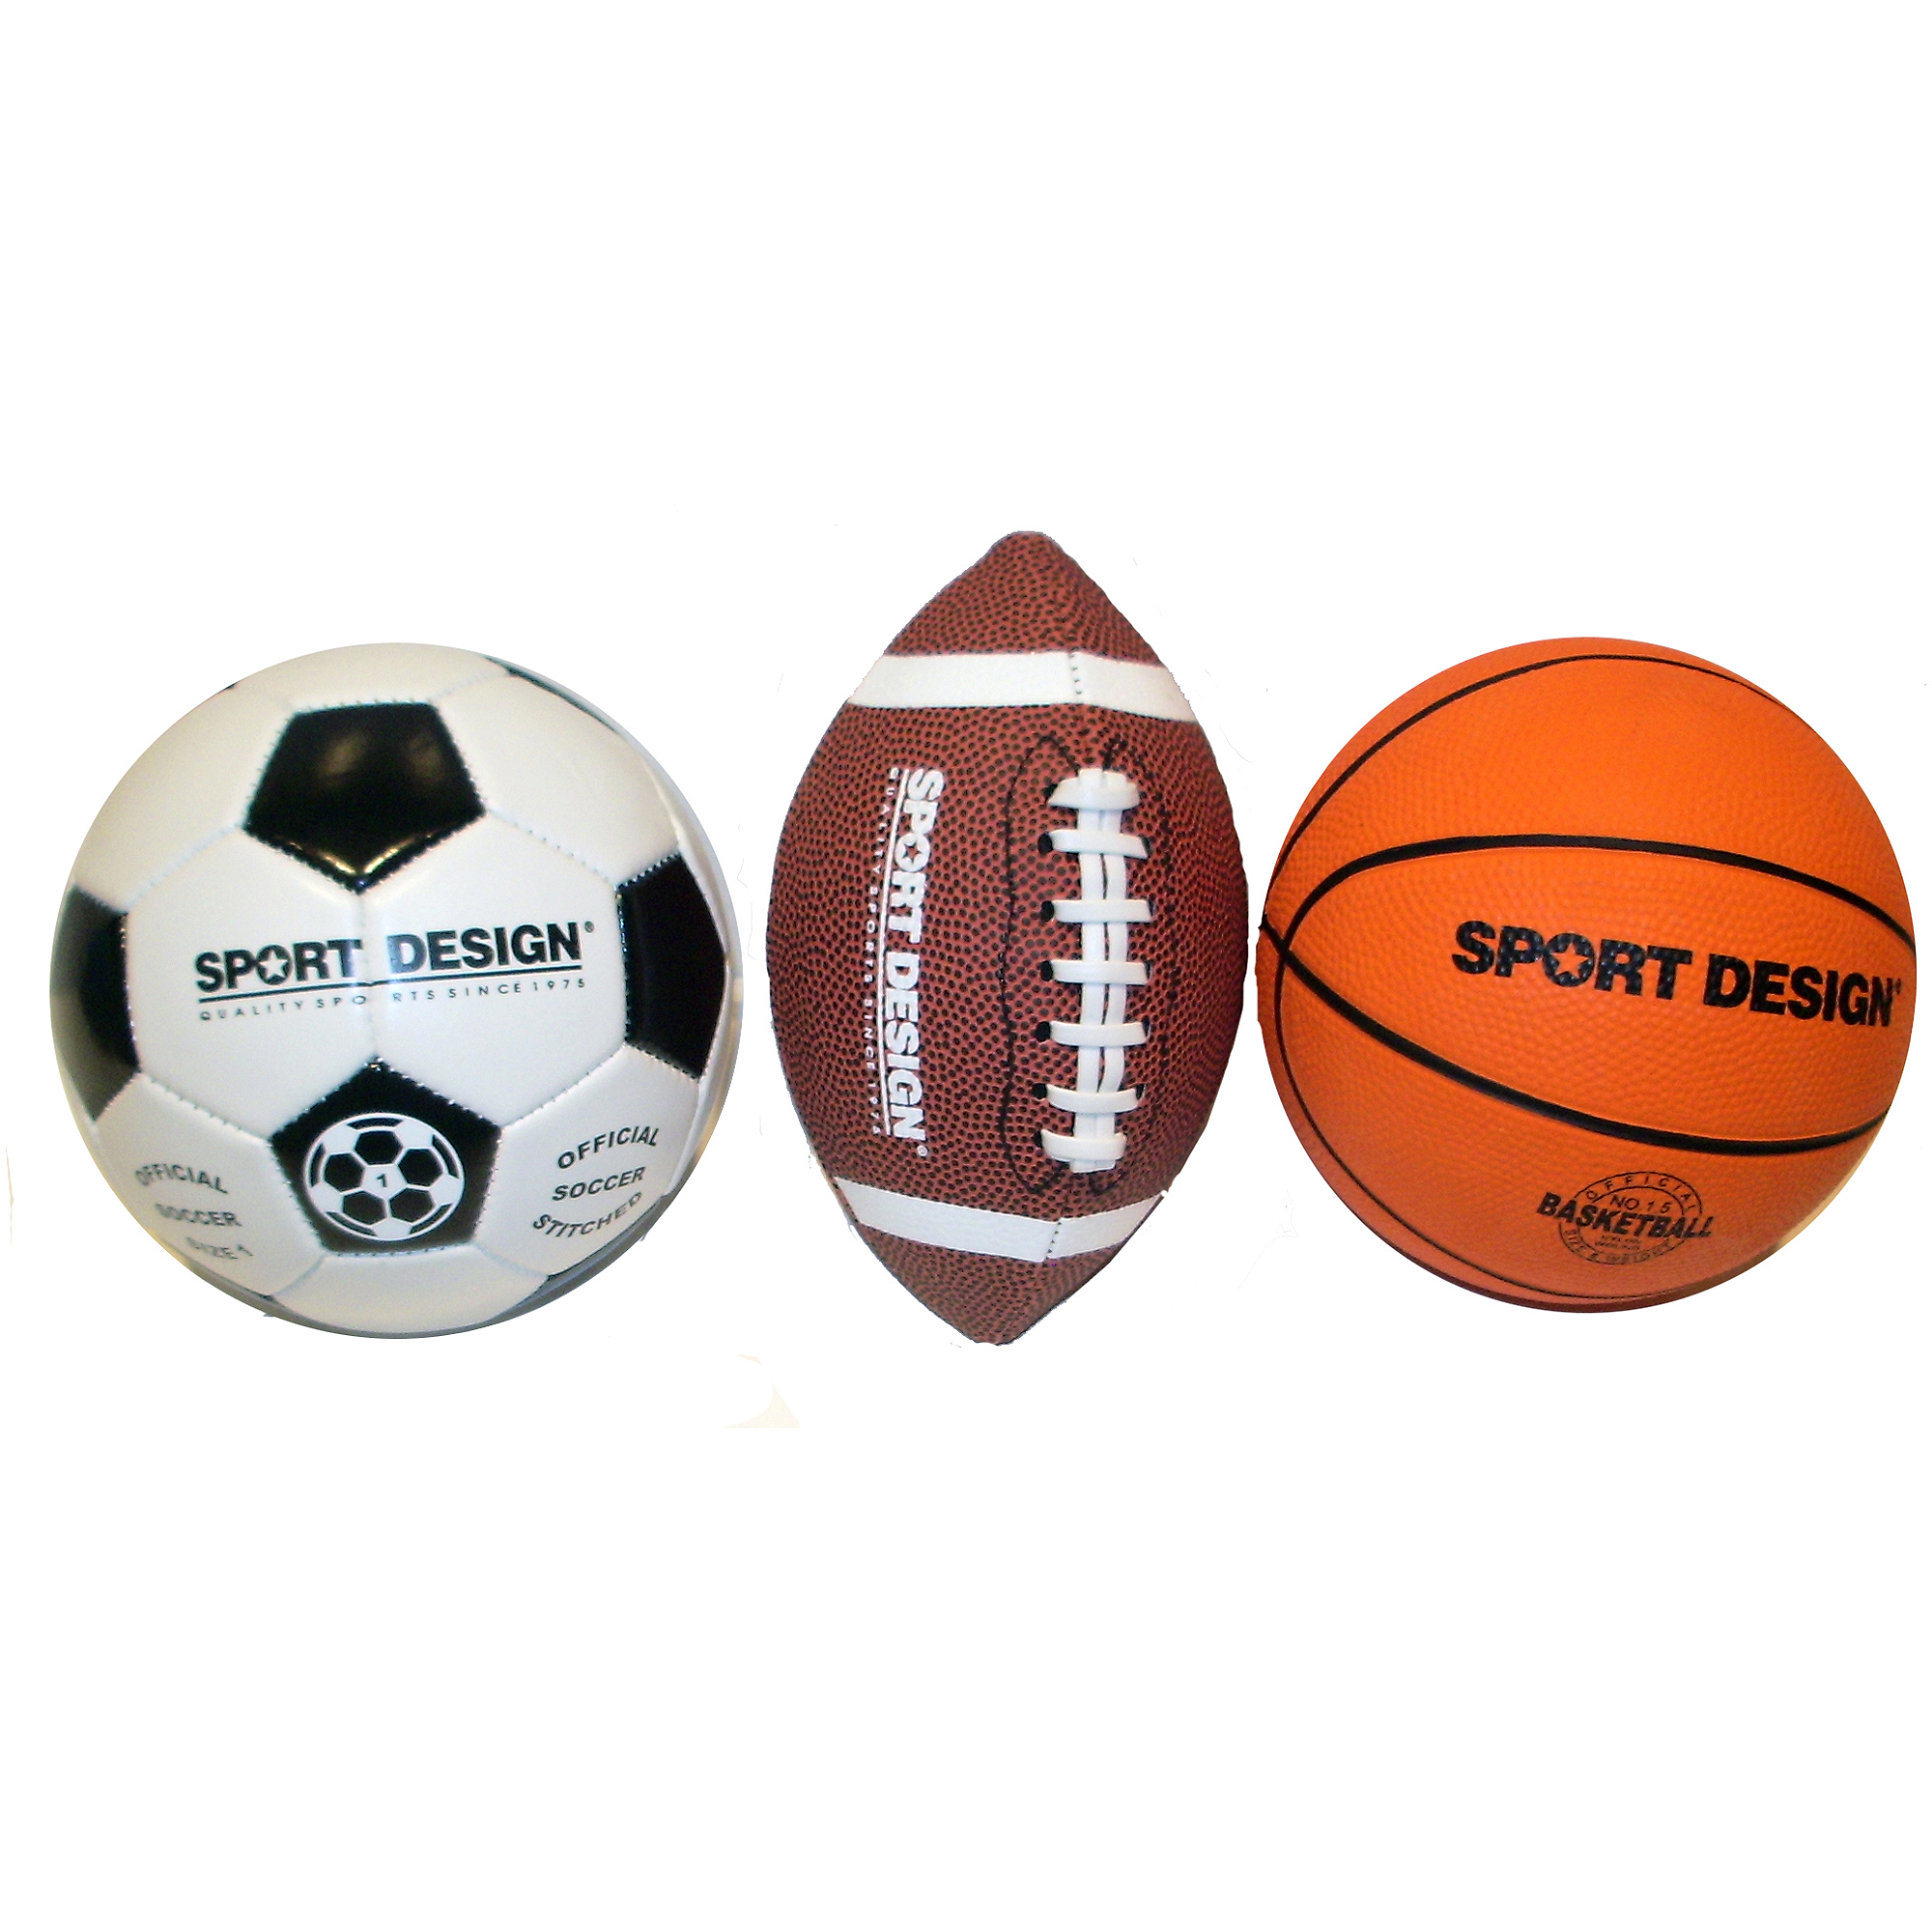 Soccer ball craft ideas - Sport Design Mini Ball Set Soccer Football And Basketball Walmart Com